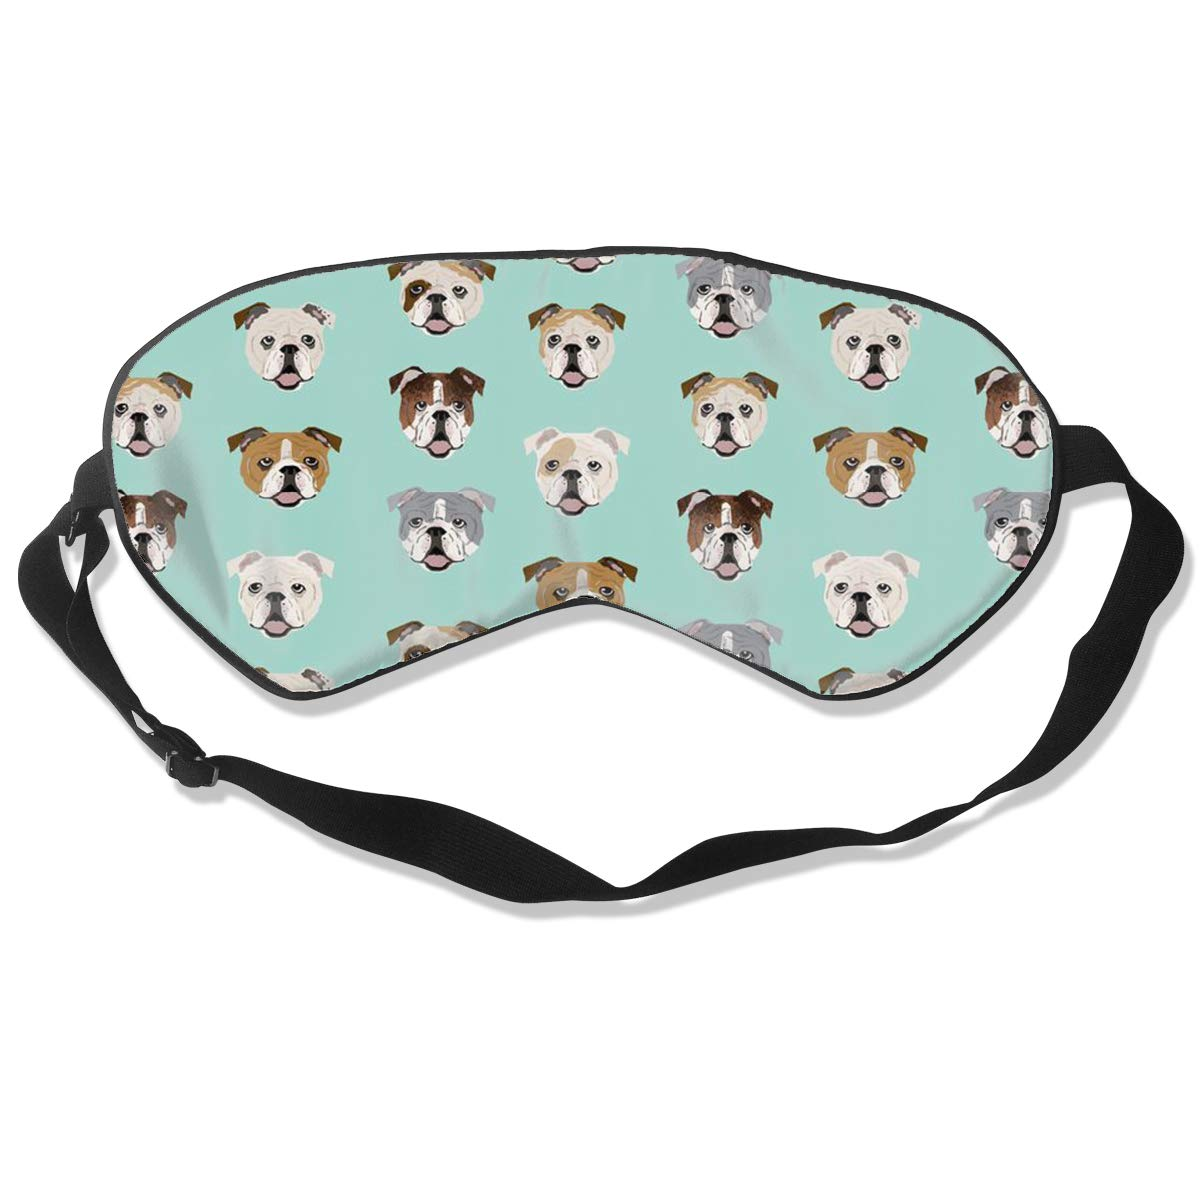 English Bulldog Dog Mint Green Sleep Mask, Women Men Light Blocking Comfortable Sleeping Mask, Adjustable Night Eye Mask for Sleeping, Memory Foam Blindfold for Home Travel Hotel